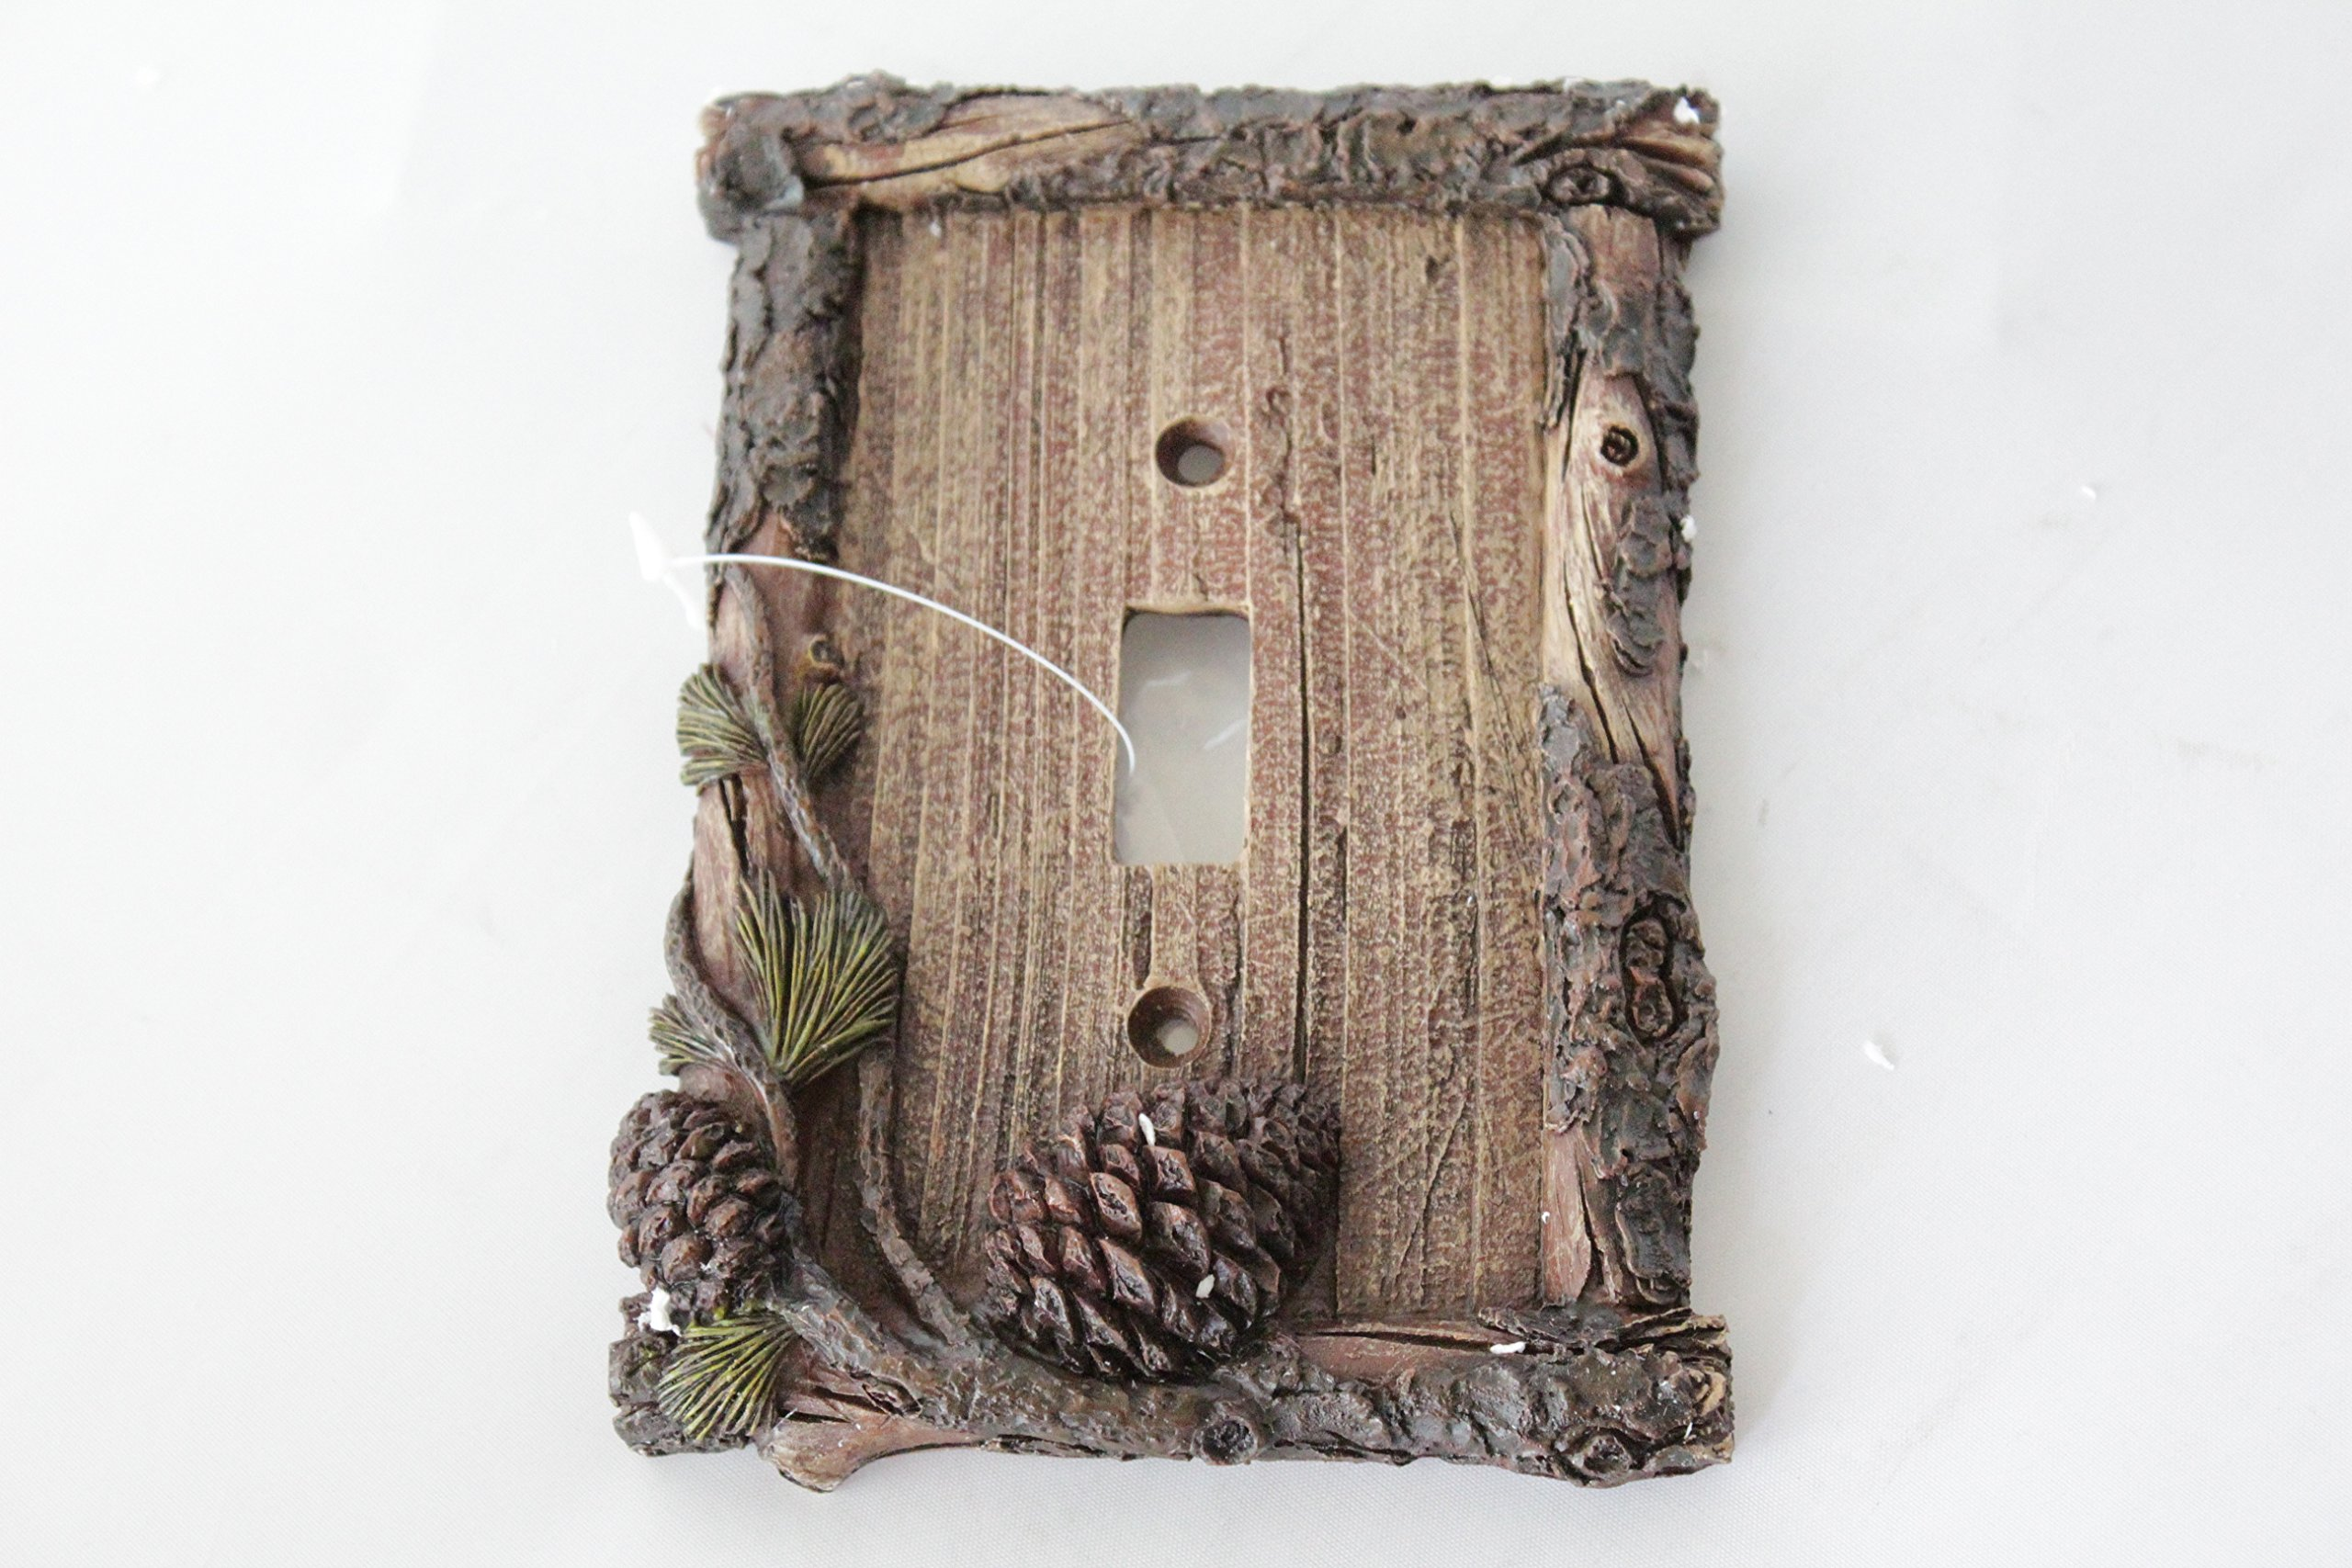 Pine Cone Switch Rocker Plate Covers Electric Outlet Plate Pine Wood Cabin Lodge Decor (single switch)